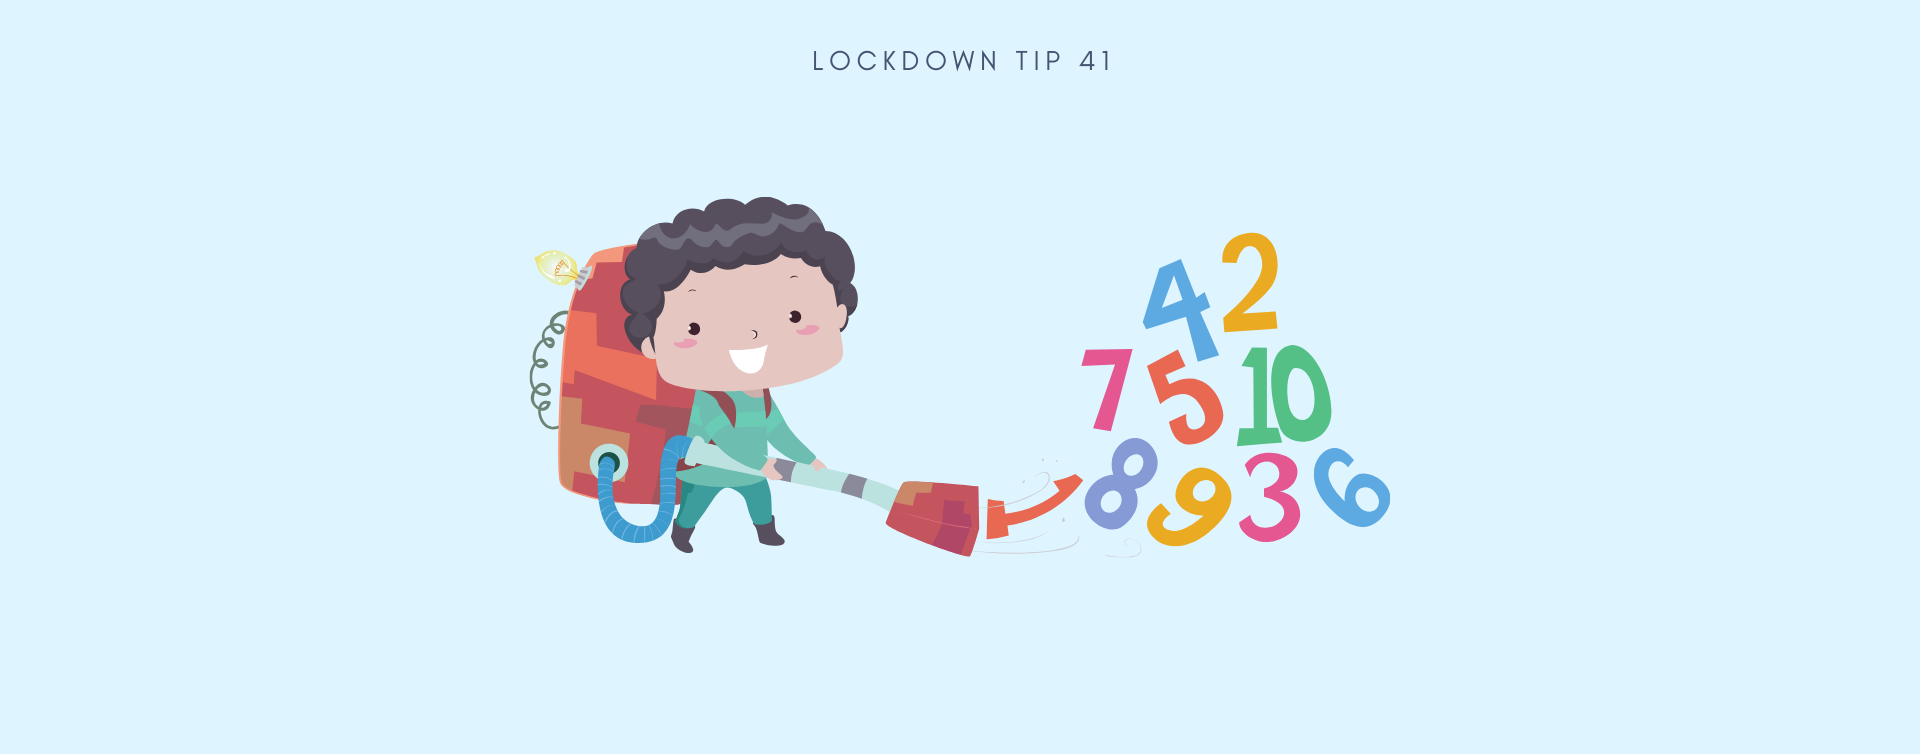 MCSA Lockdown Tip 41